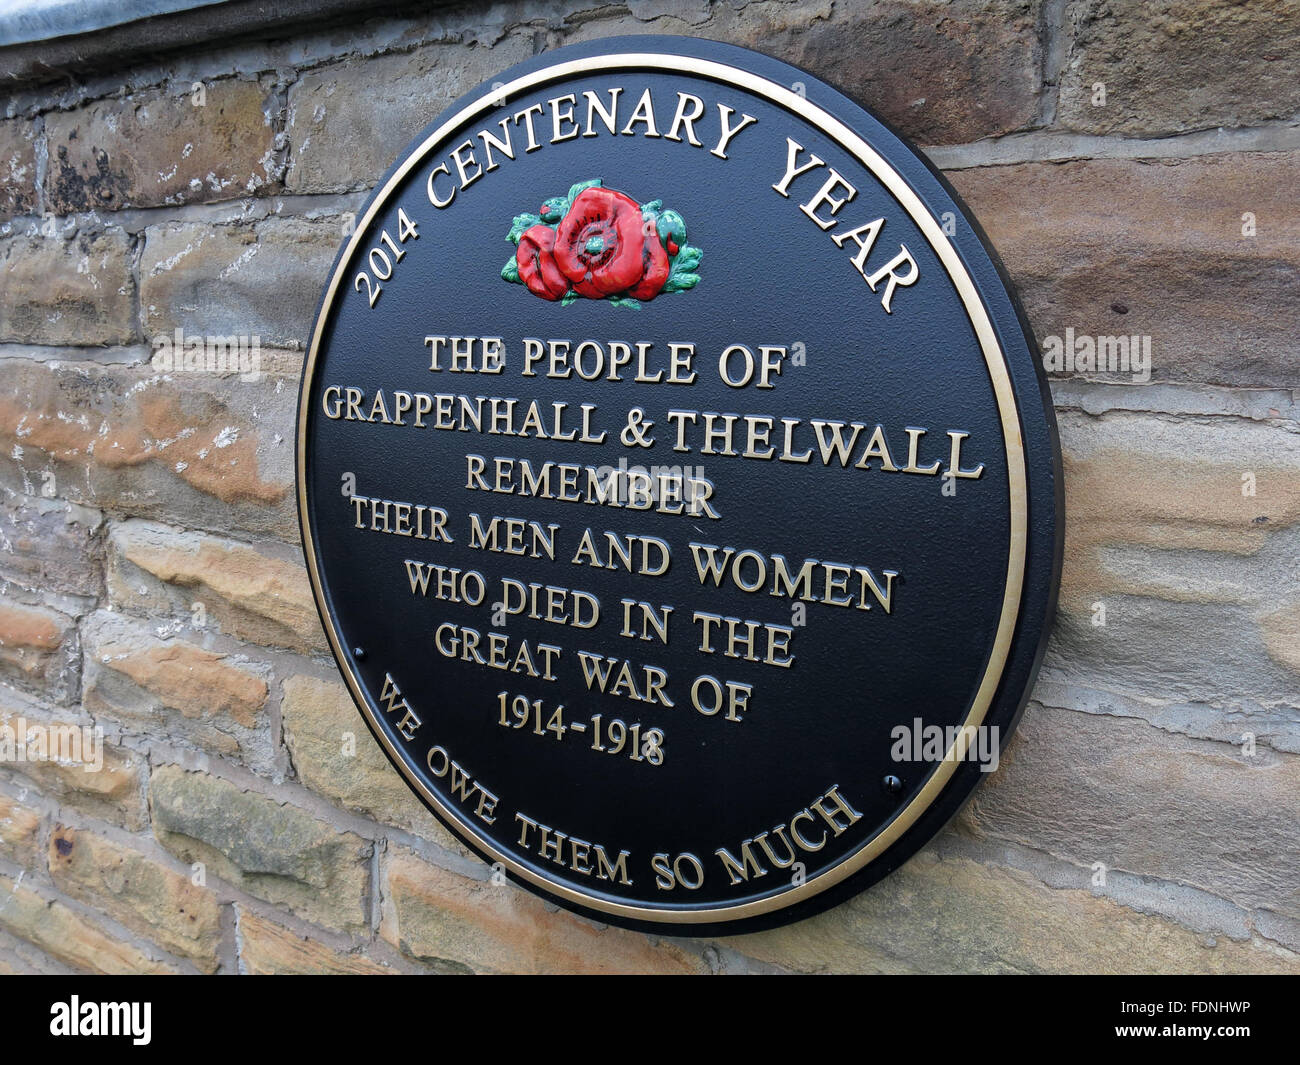 2014 Centenary Year Plaque, Grappenhall & Thelwall - Great War 1914-1918, Cheshire, England, UK - Methodist - Stock Image